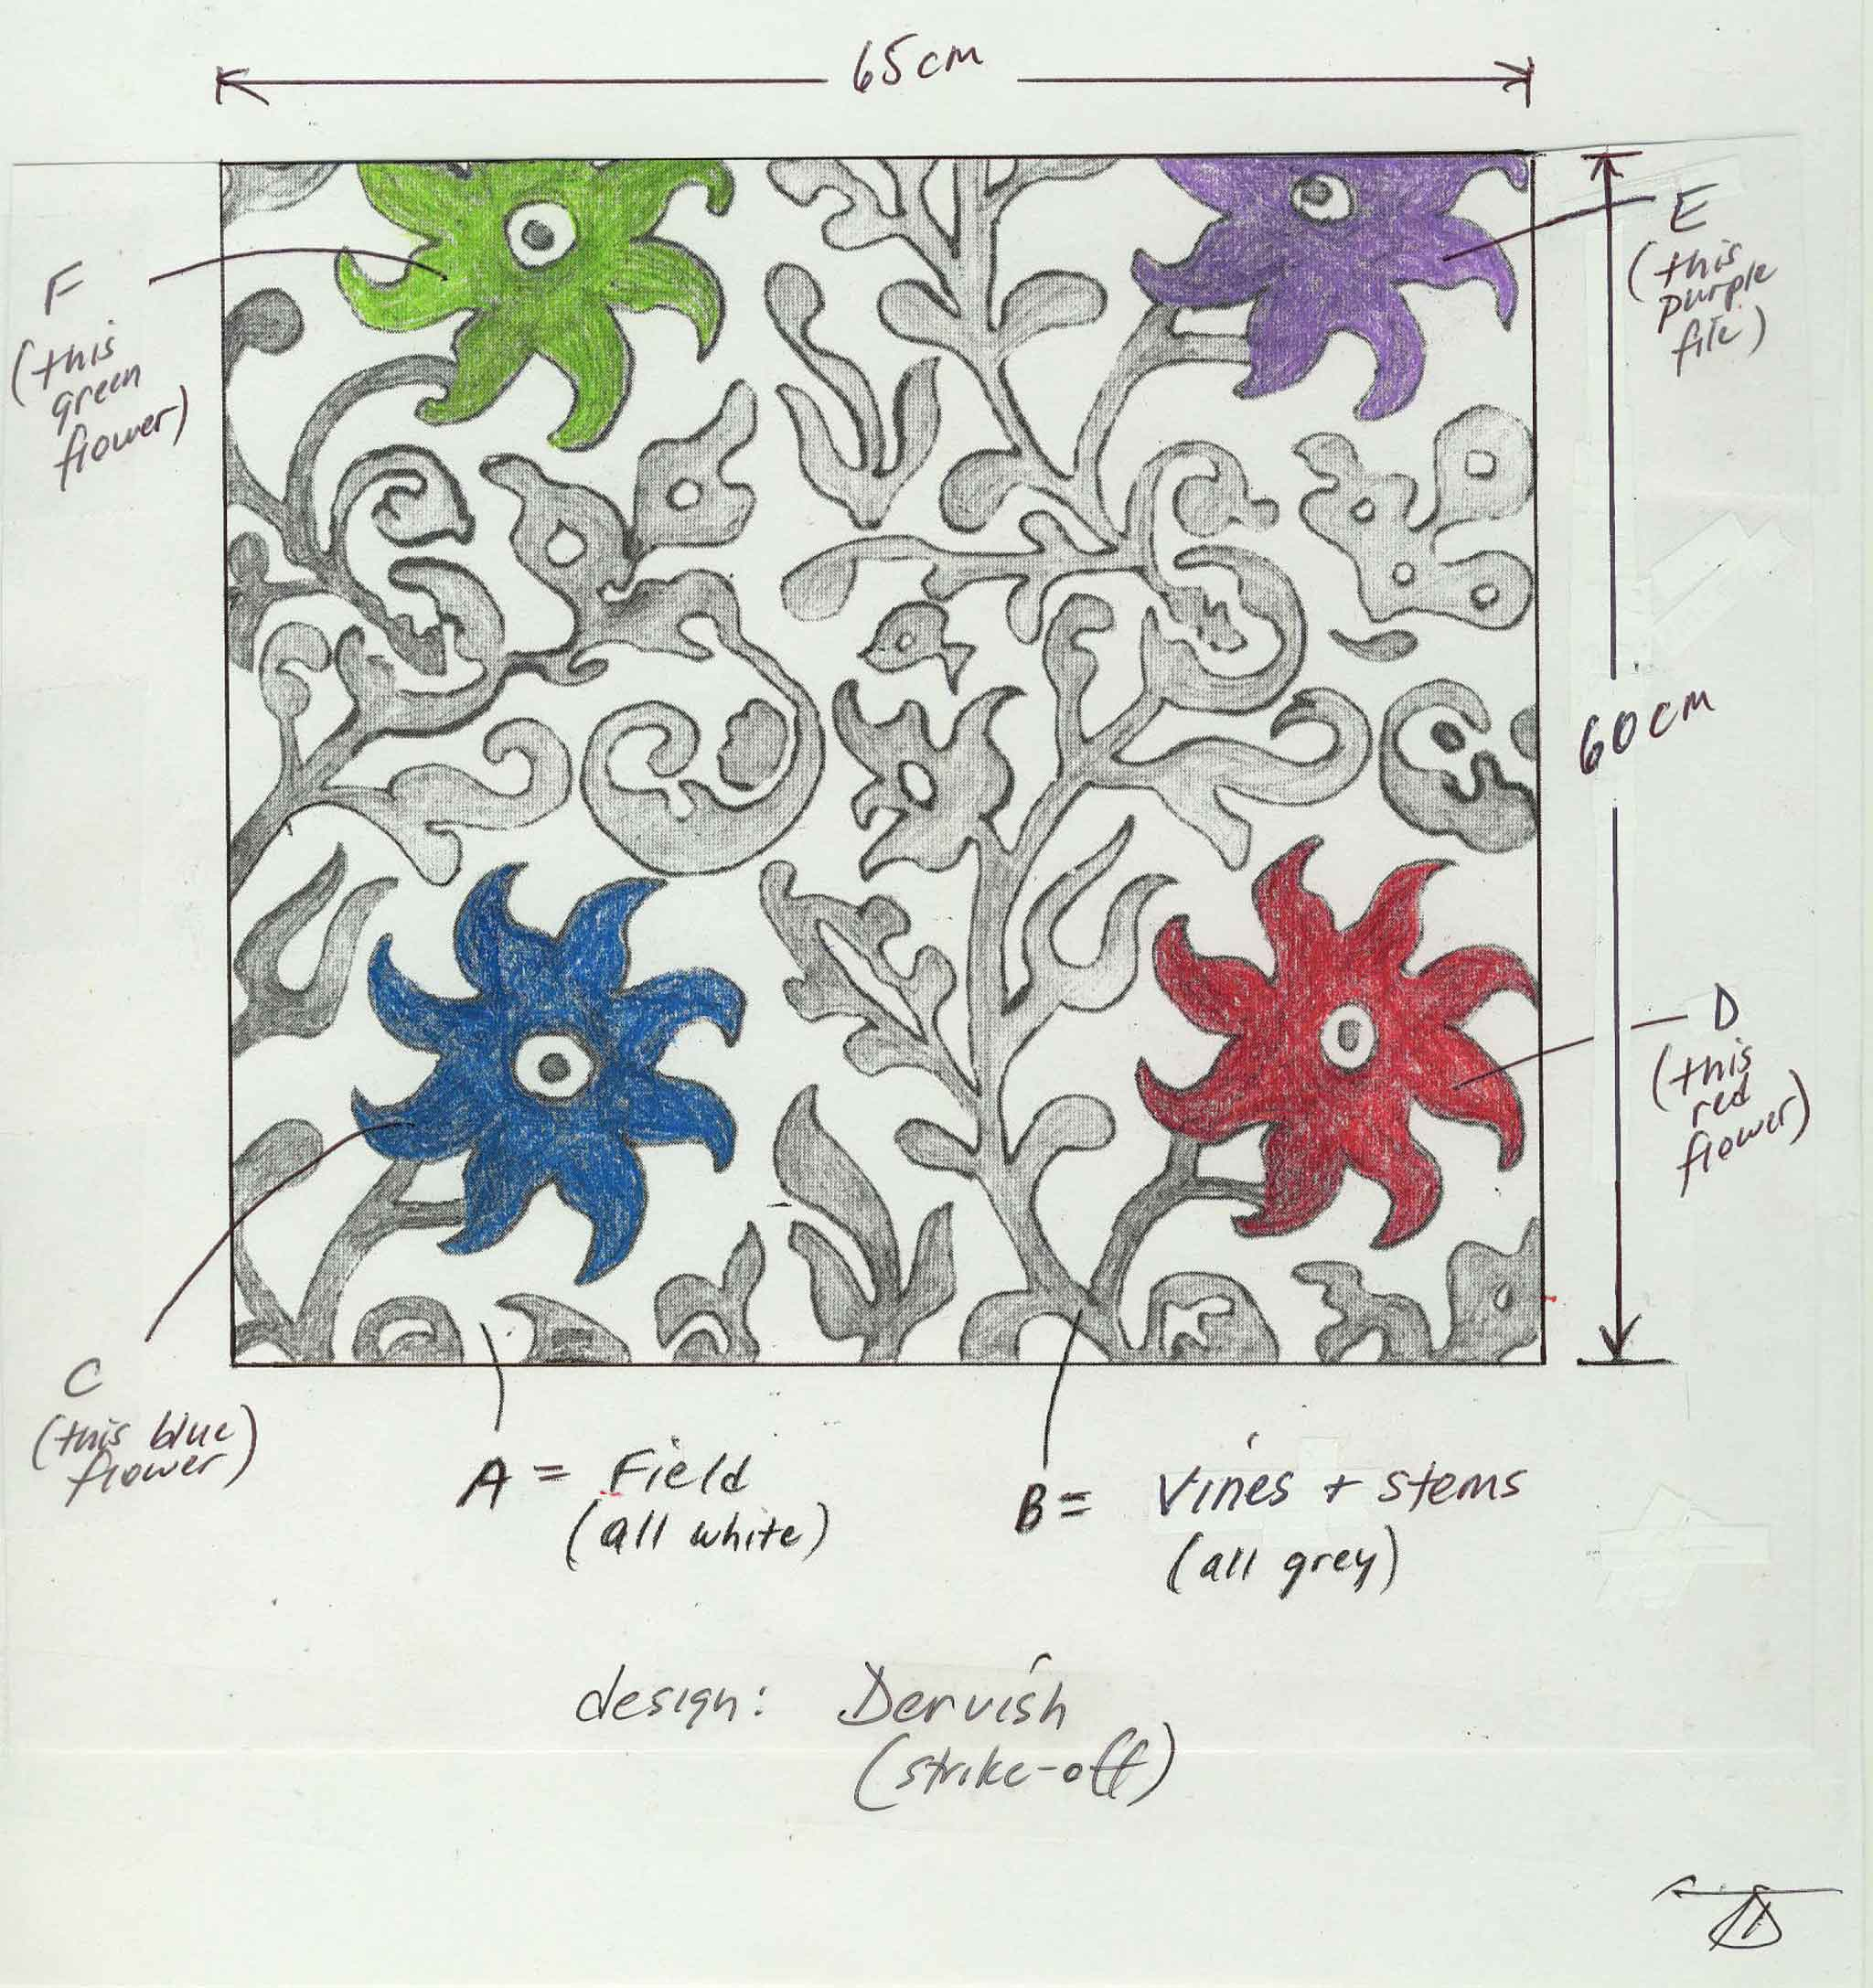 Original Artwork for a custom strike-off of the Kooches Carpet 'Dervish' by Tom DeMarco | Image courtesy of Kooches